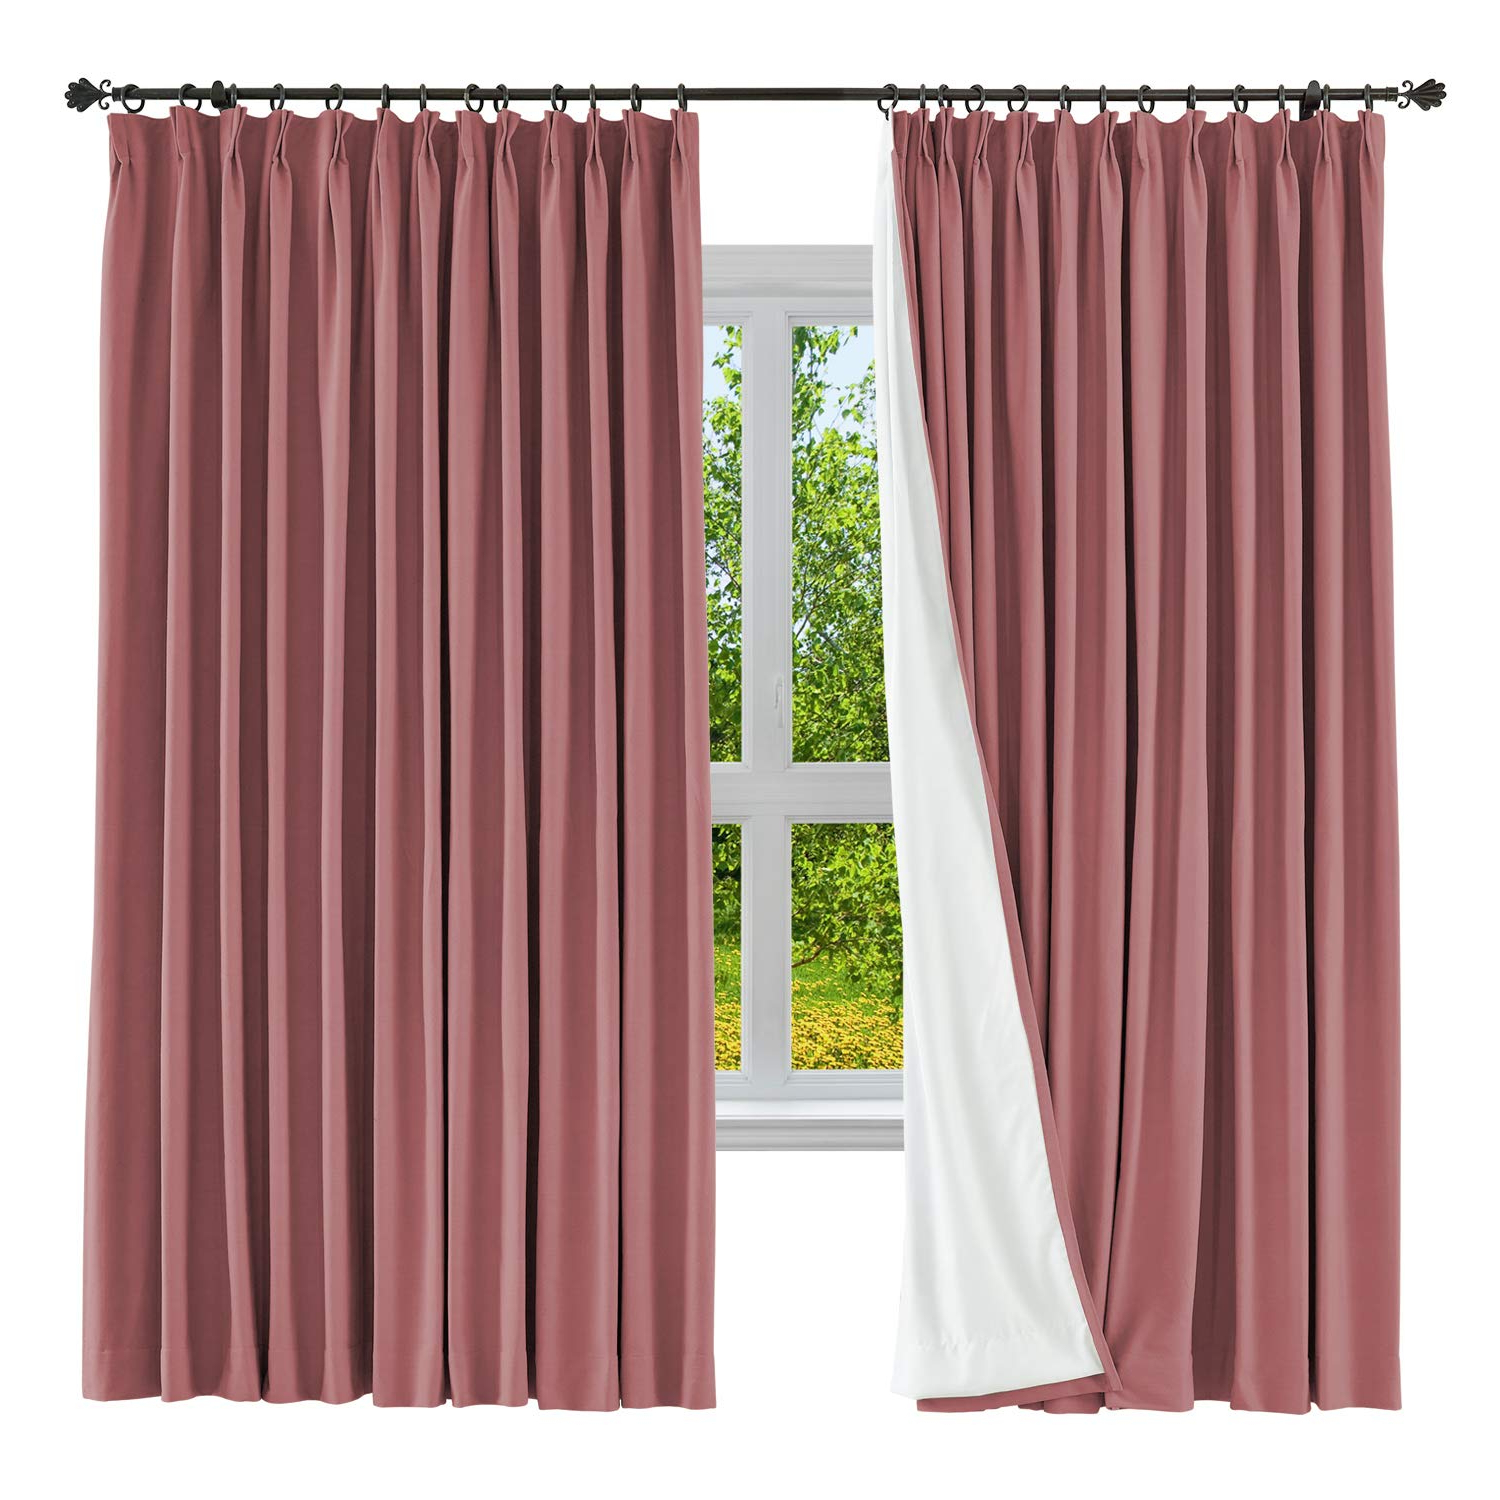 "Cololeaf Blackout Curtain Linen Cotton Drapery Blackout Solid Pinch Pleated  Curtain For Bedroom Living Room Family Room, 84"" W X 84"" L (Red, 1 Panel) Intended For 2020 Solid Cotton Pleated Curtains (View 7 of 20)"